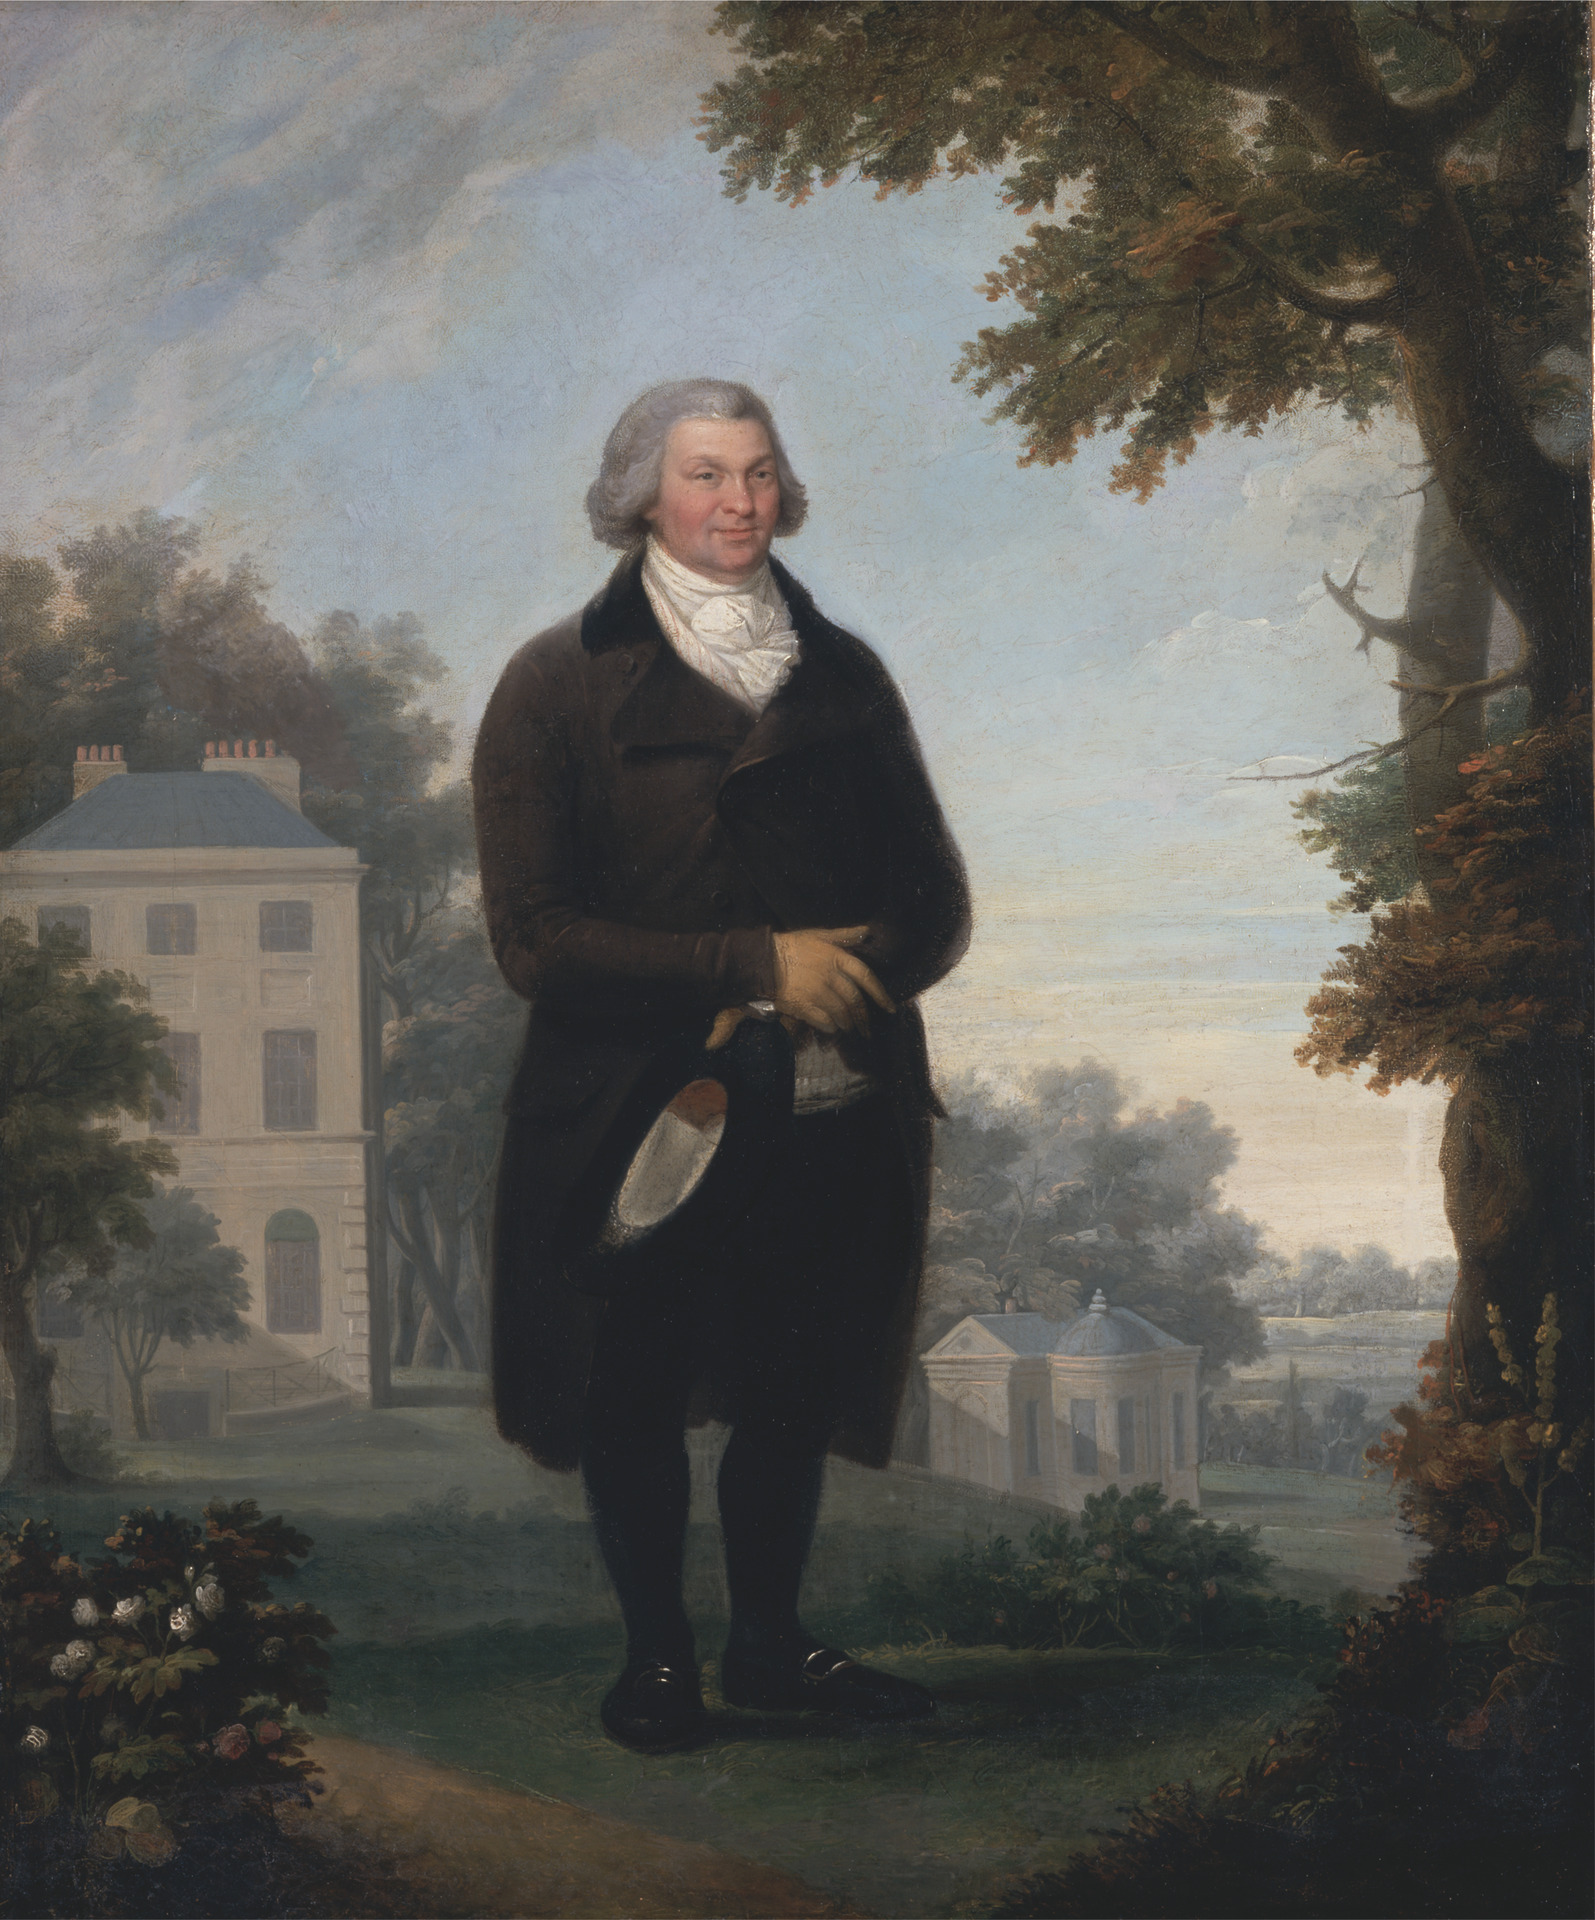 A Gentleman in the Grounds of his House by Samuel de Wilde (1748-1832), 1800/1810 © Yale Center for British Art, Paul Mellon Collection